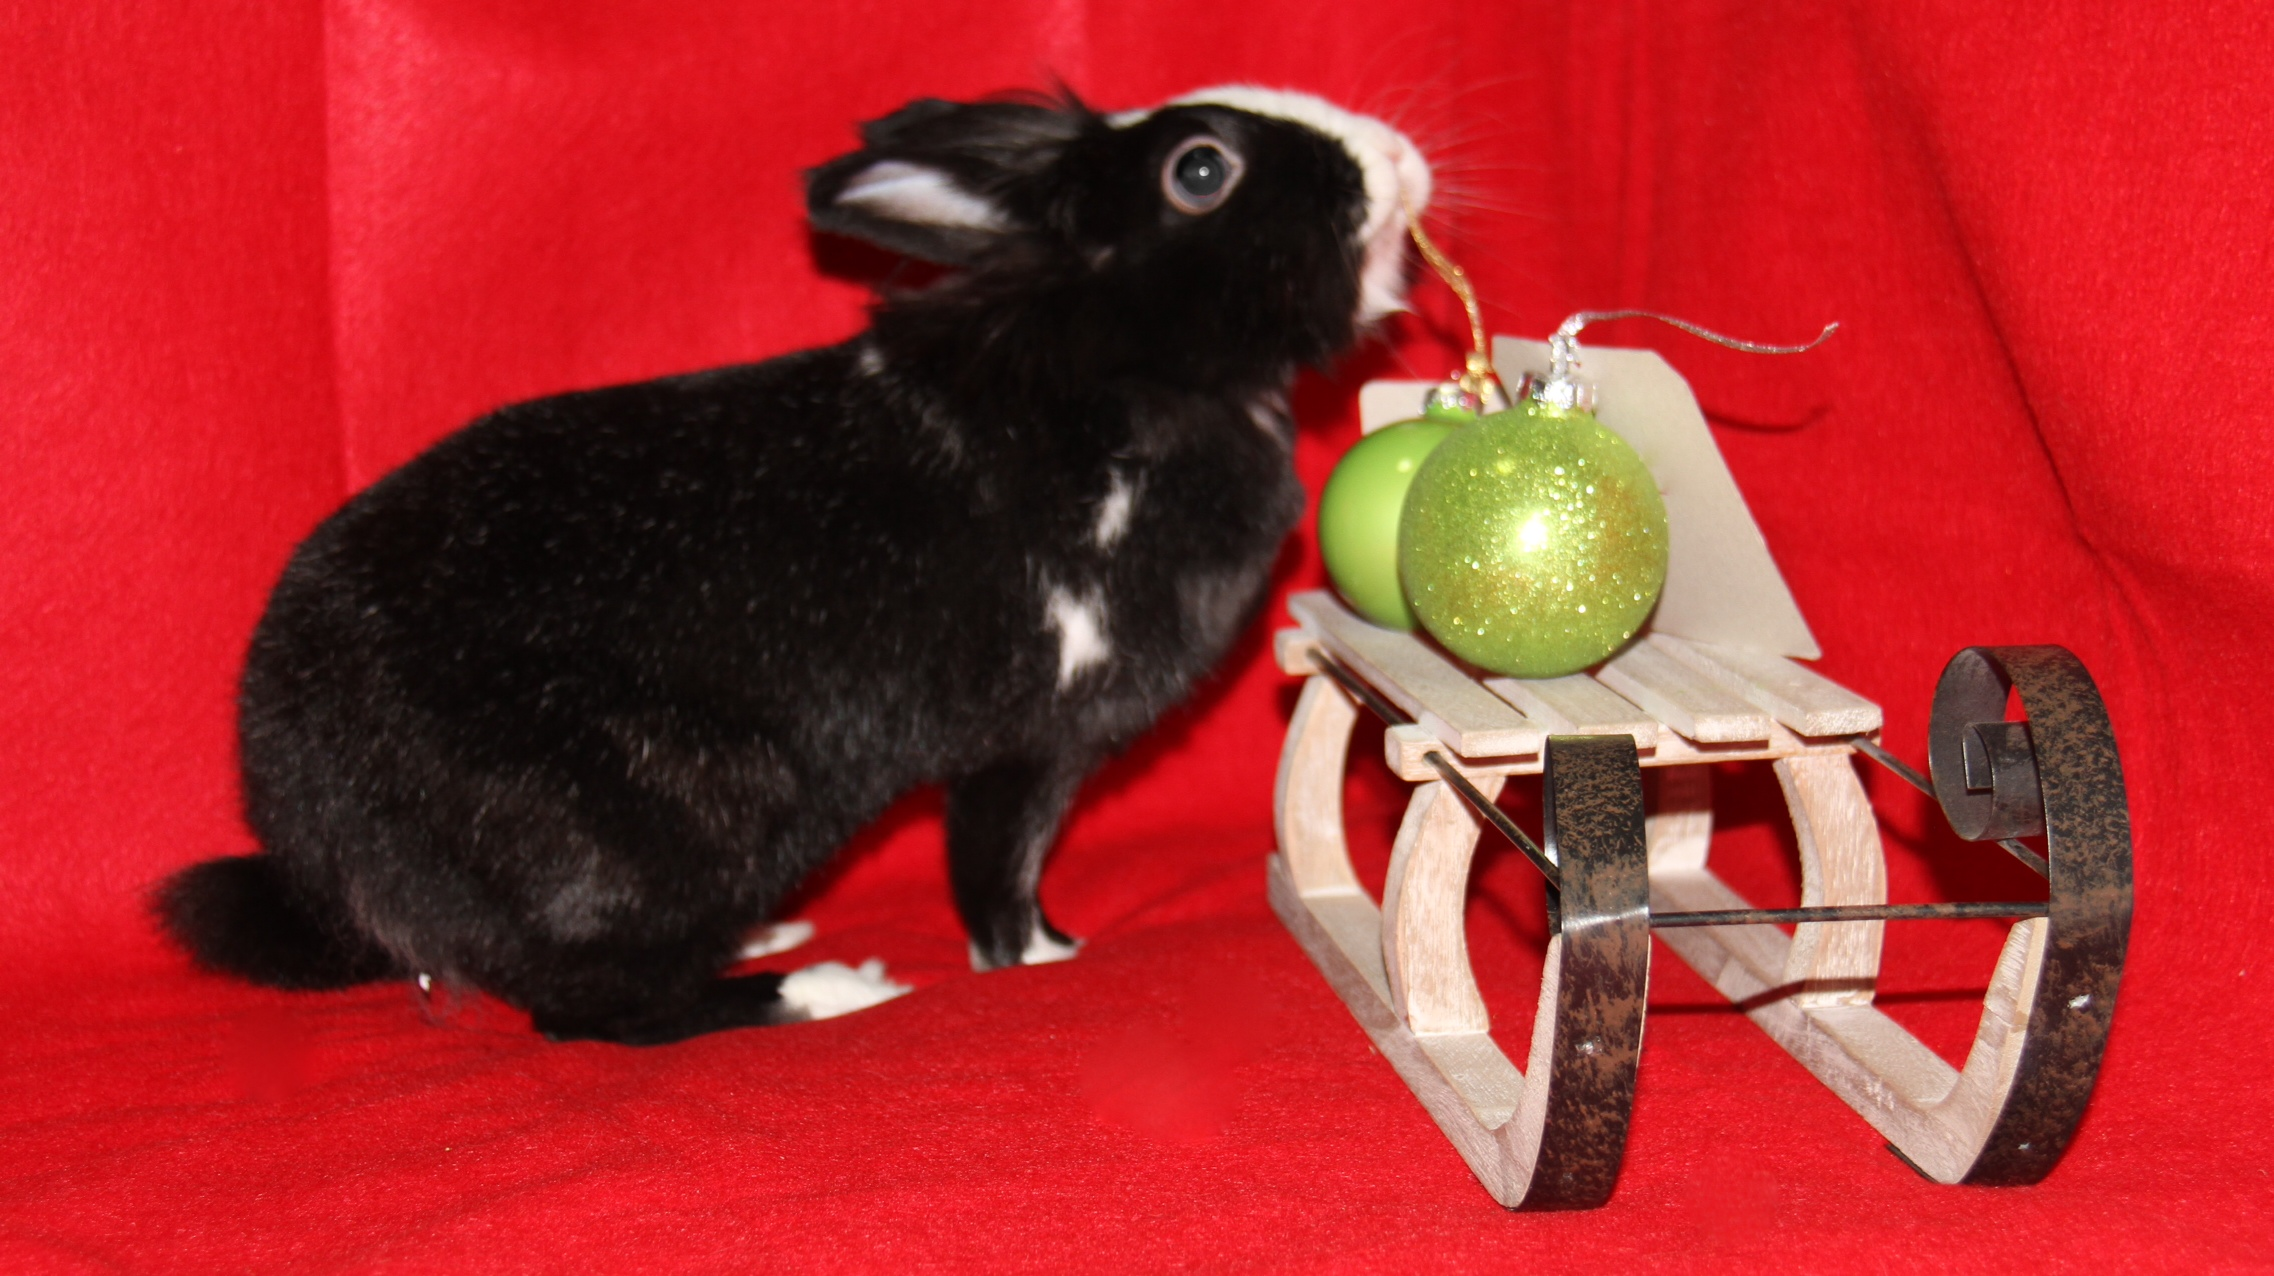 Bunny Gets Curious During Her Christmas Photoshoot 2